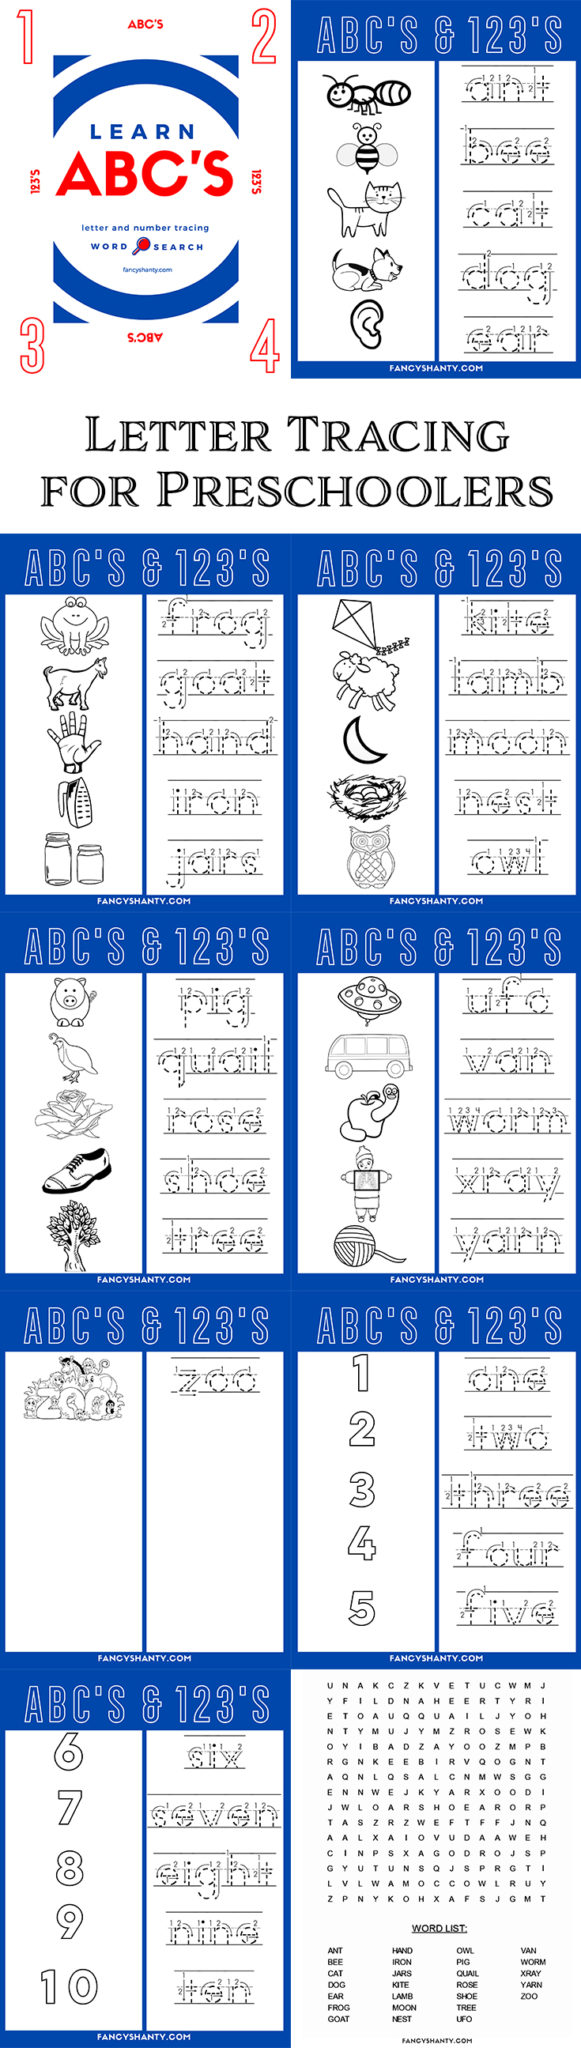 Letter Tracing for Preschoolers